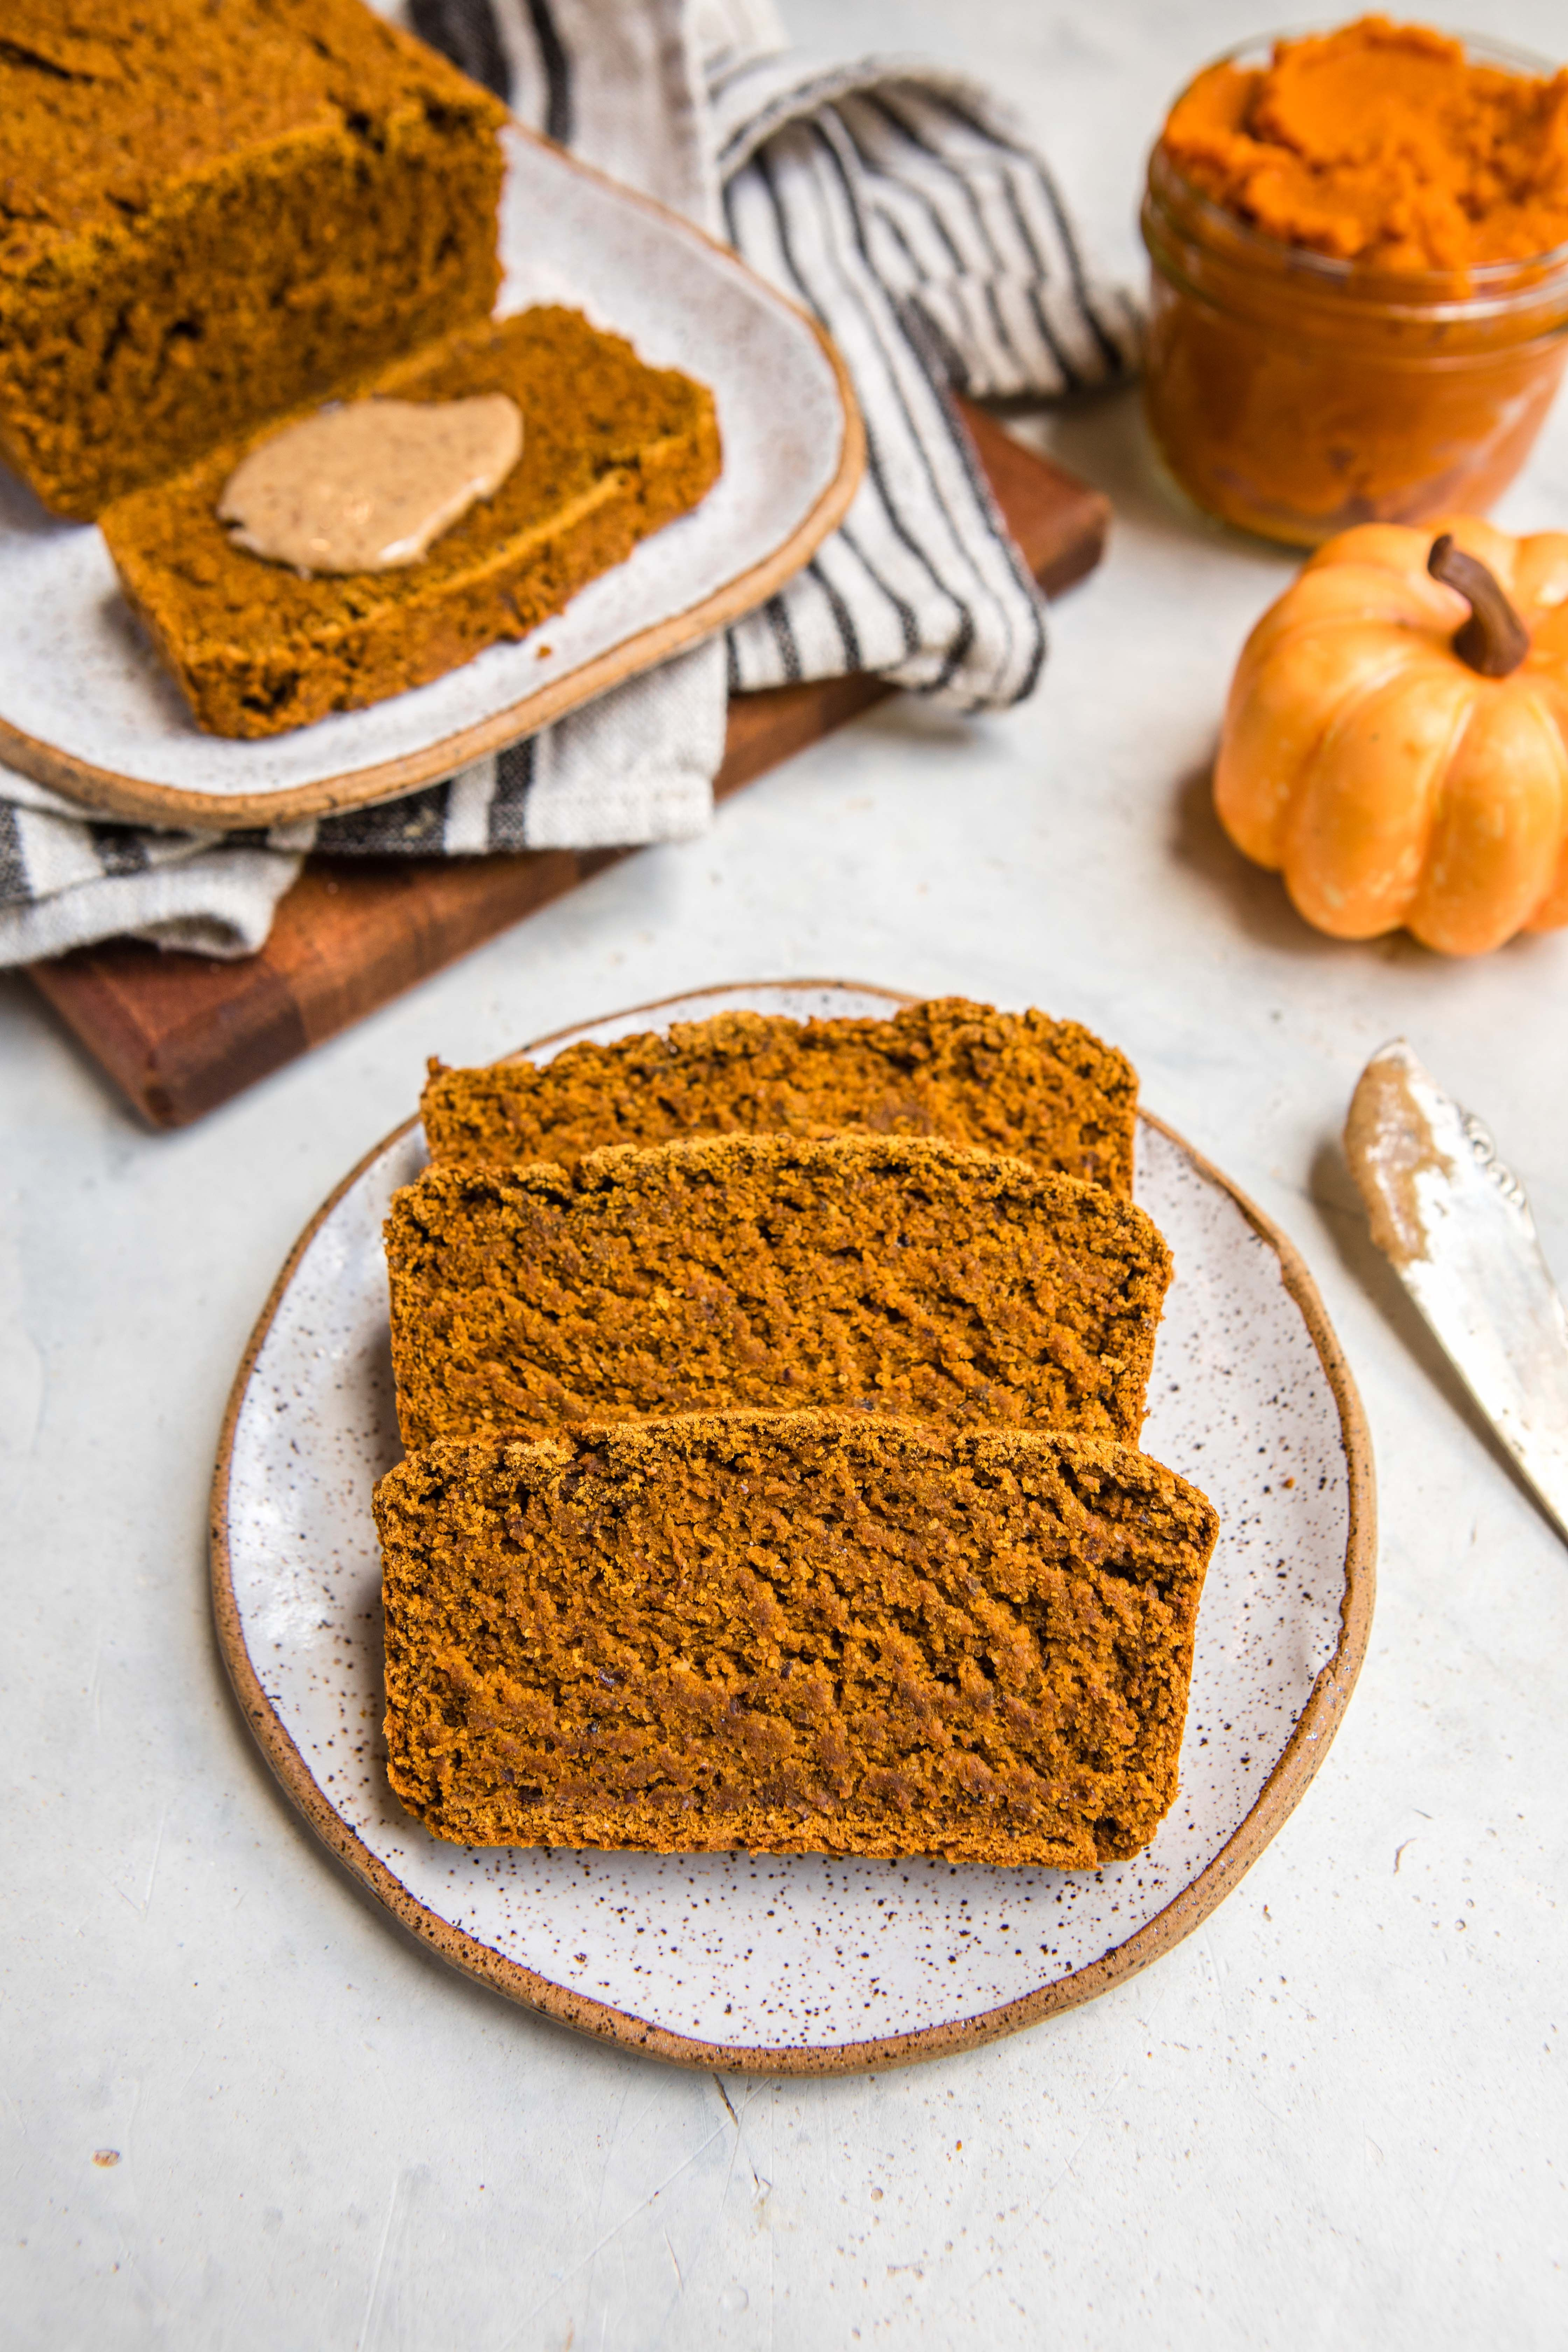 Vegan Pumpkin Bread (Fluffy & GlutenFree!) is part of Vegan dessert Healthy - Fluffy, GlutenFree, and made with only 8 ingredients, this Vegan Pumpkin Bread is sure to be a hit! Perfect for a delicious Fall breakfast, snack, or healthy dessert